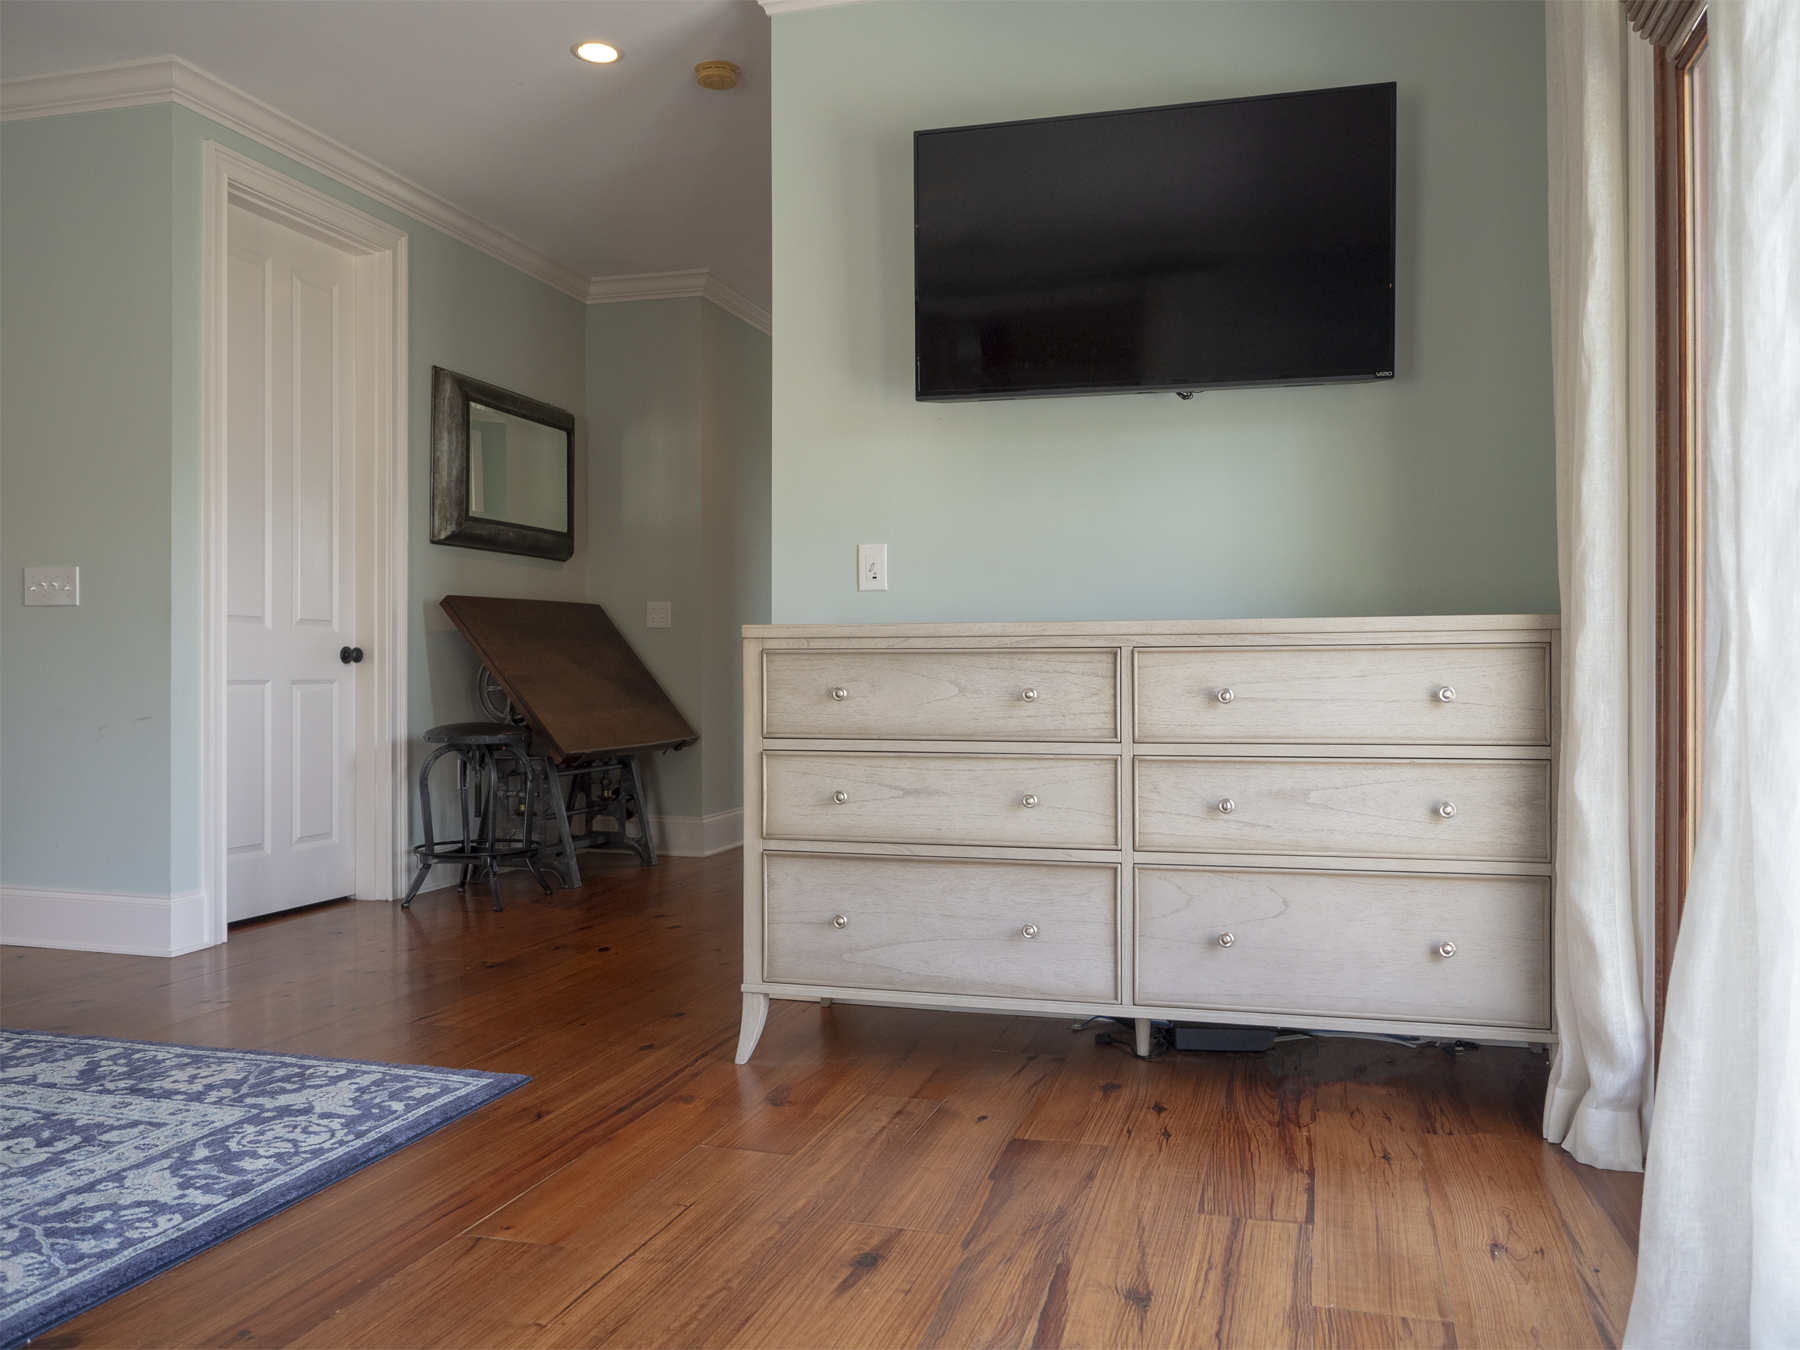 Dresser storage and wall mounted HDTV in master bedroom